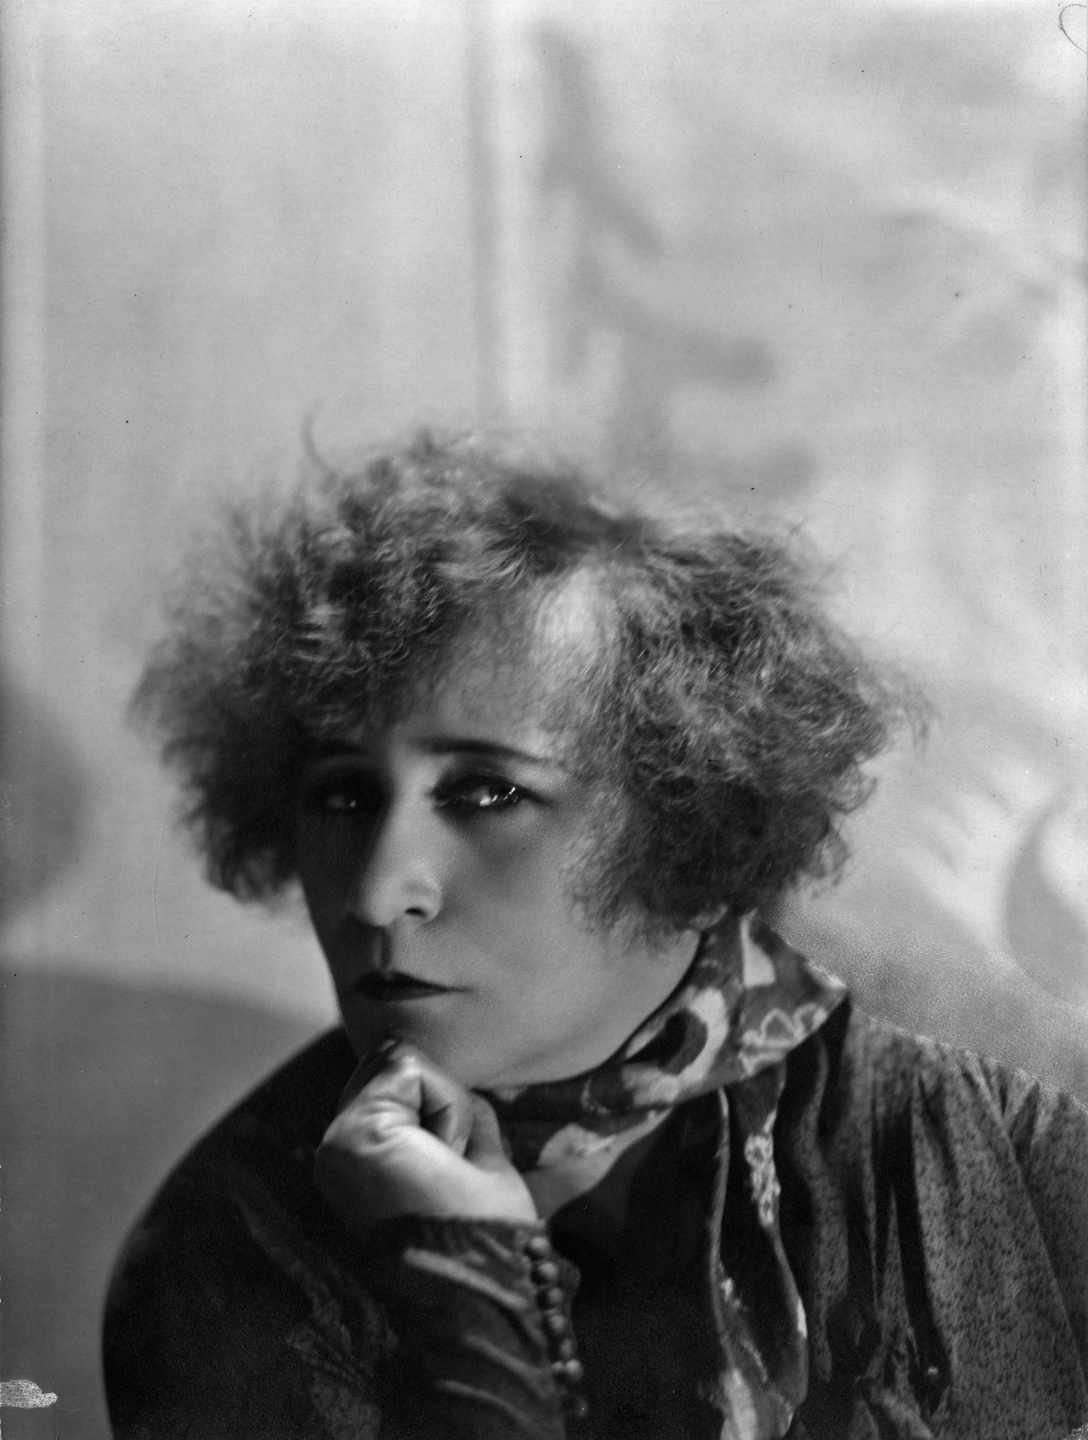 Colette, 1930 ©The Cecil Beaton Studio Archive at Sotheby's